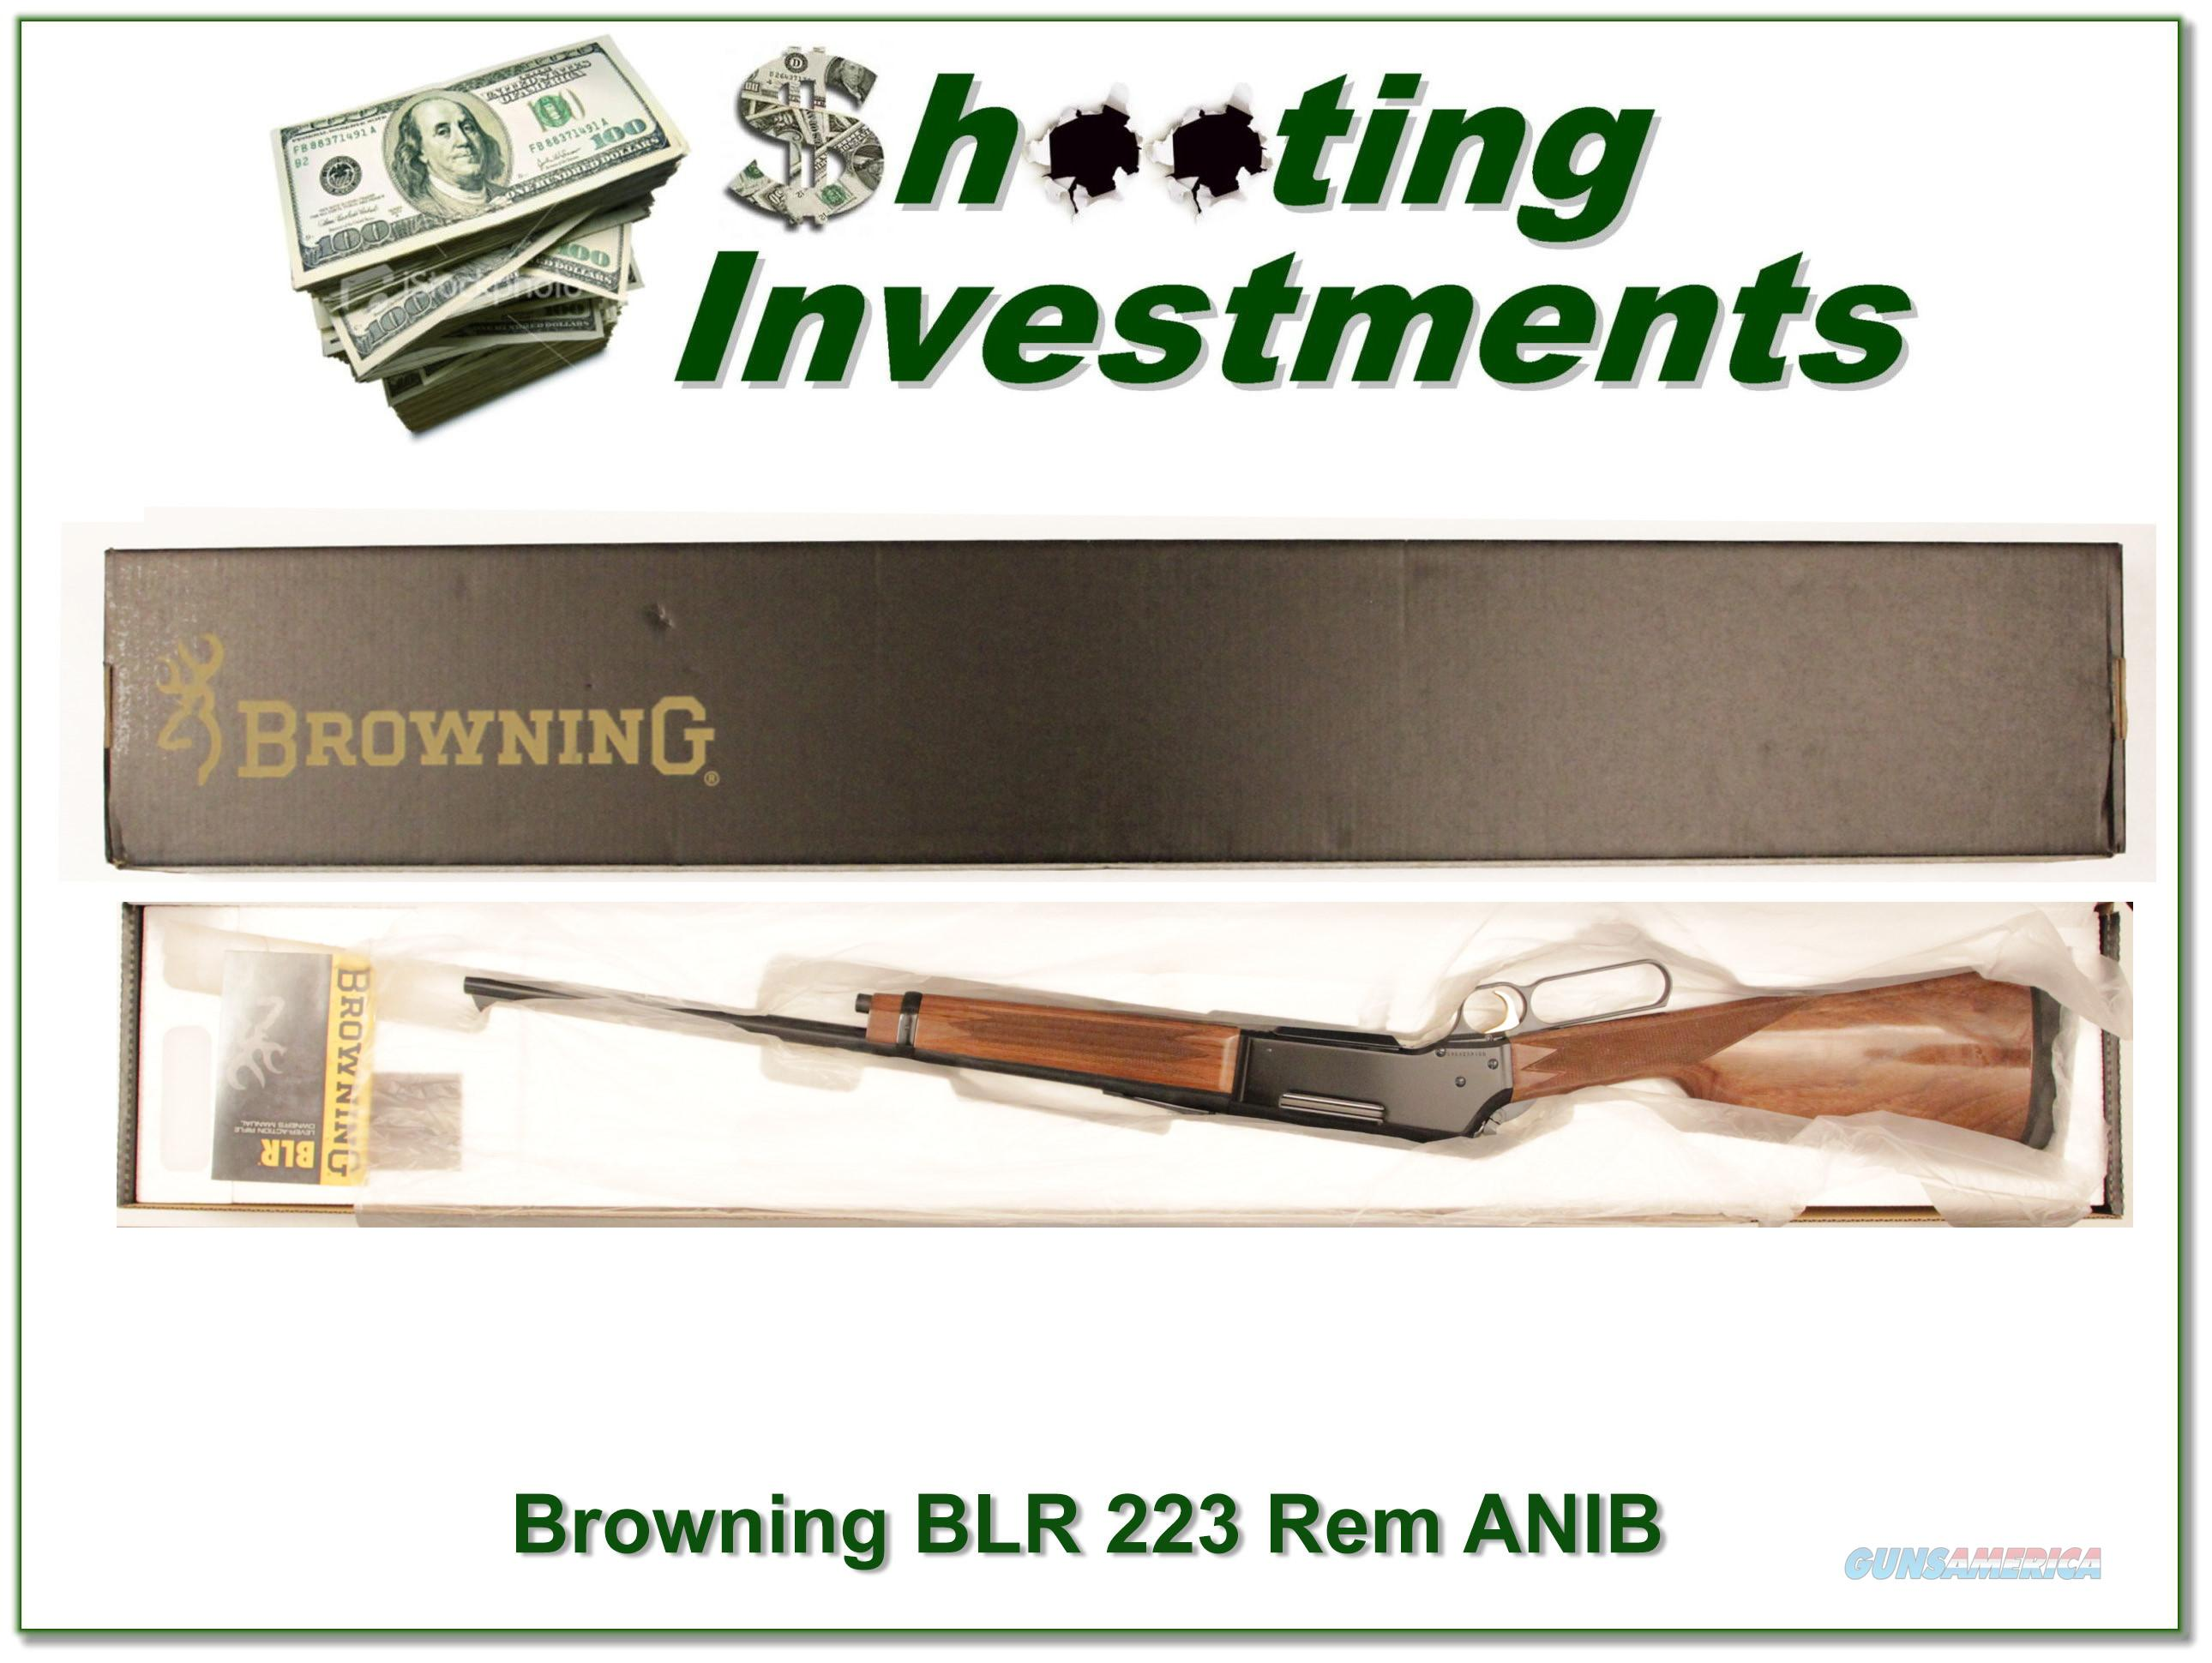 Browning BLR Model 81 Light Weight 223 Rem ANIB  Guns > Rifles > Browning Rifles > Lever Action